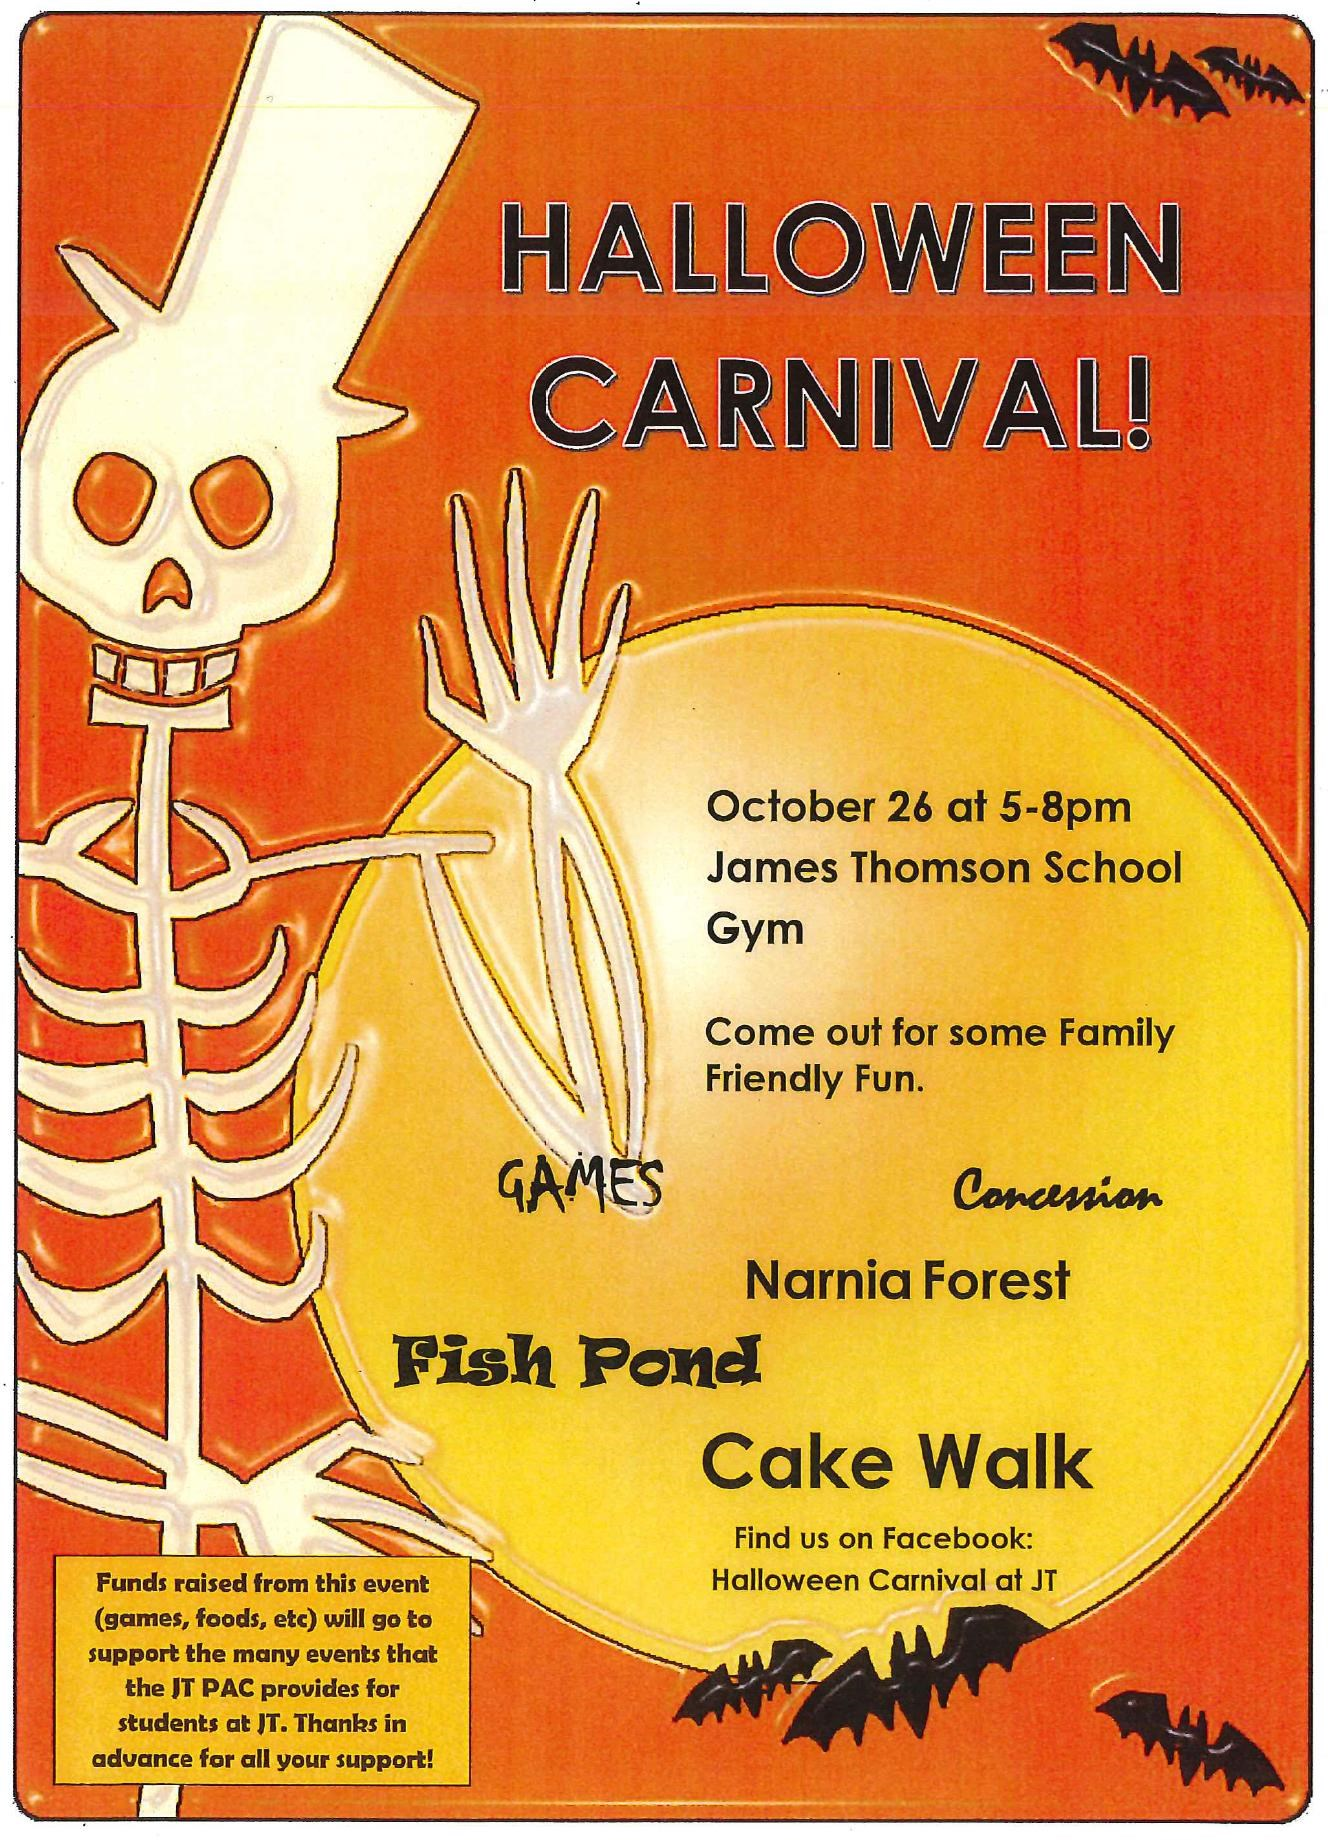 JT Halloween Carnival - Friday, Oct 26th (5pm-8pm)